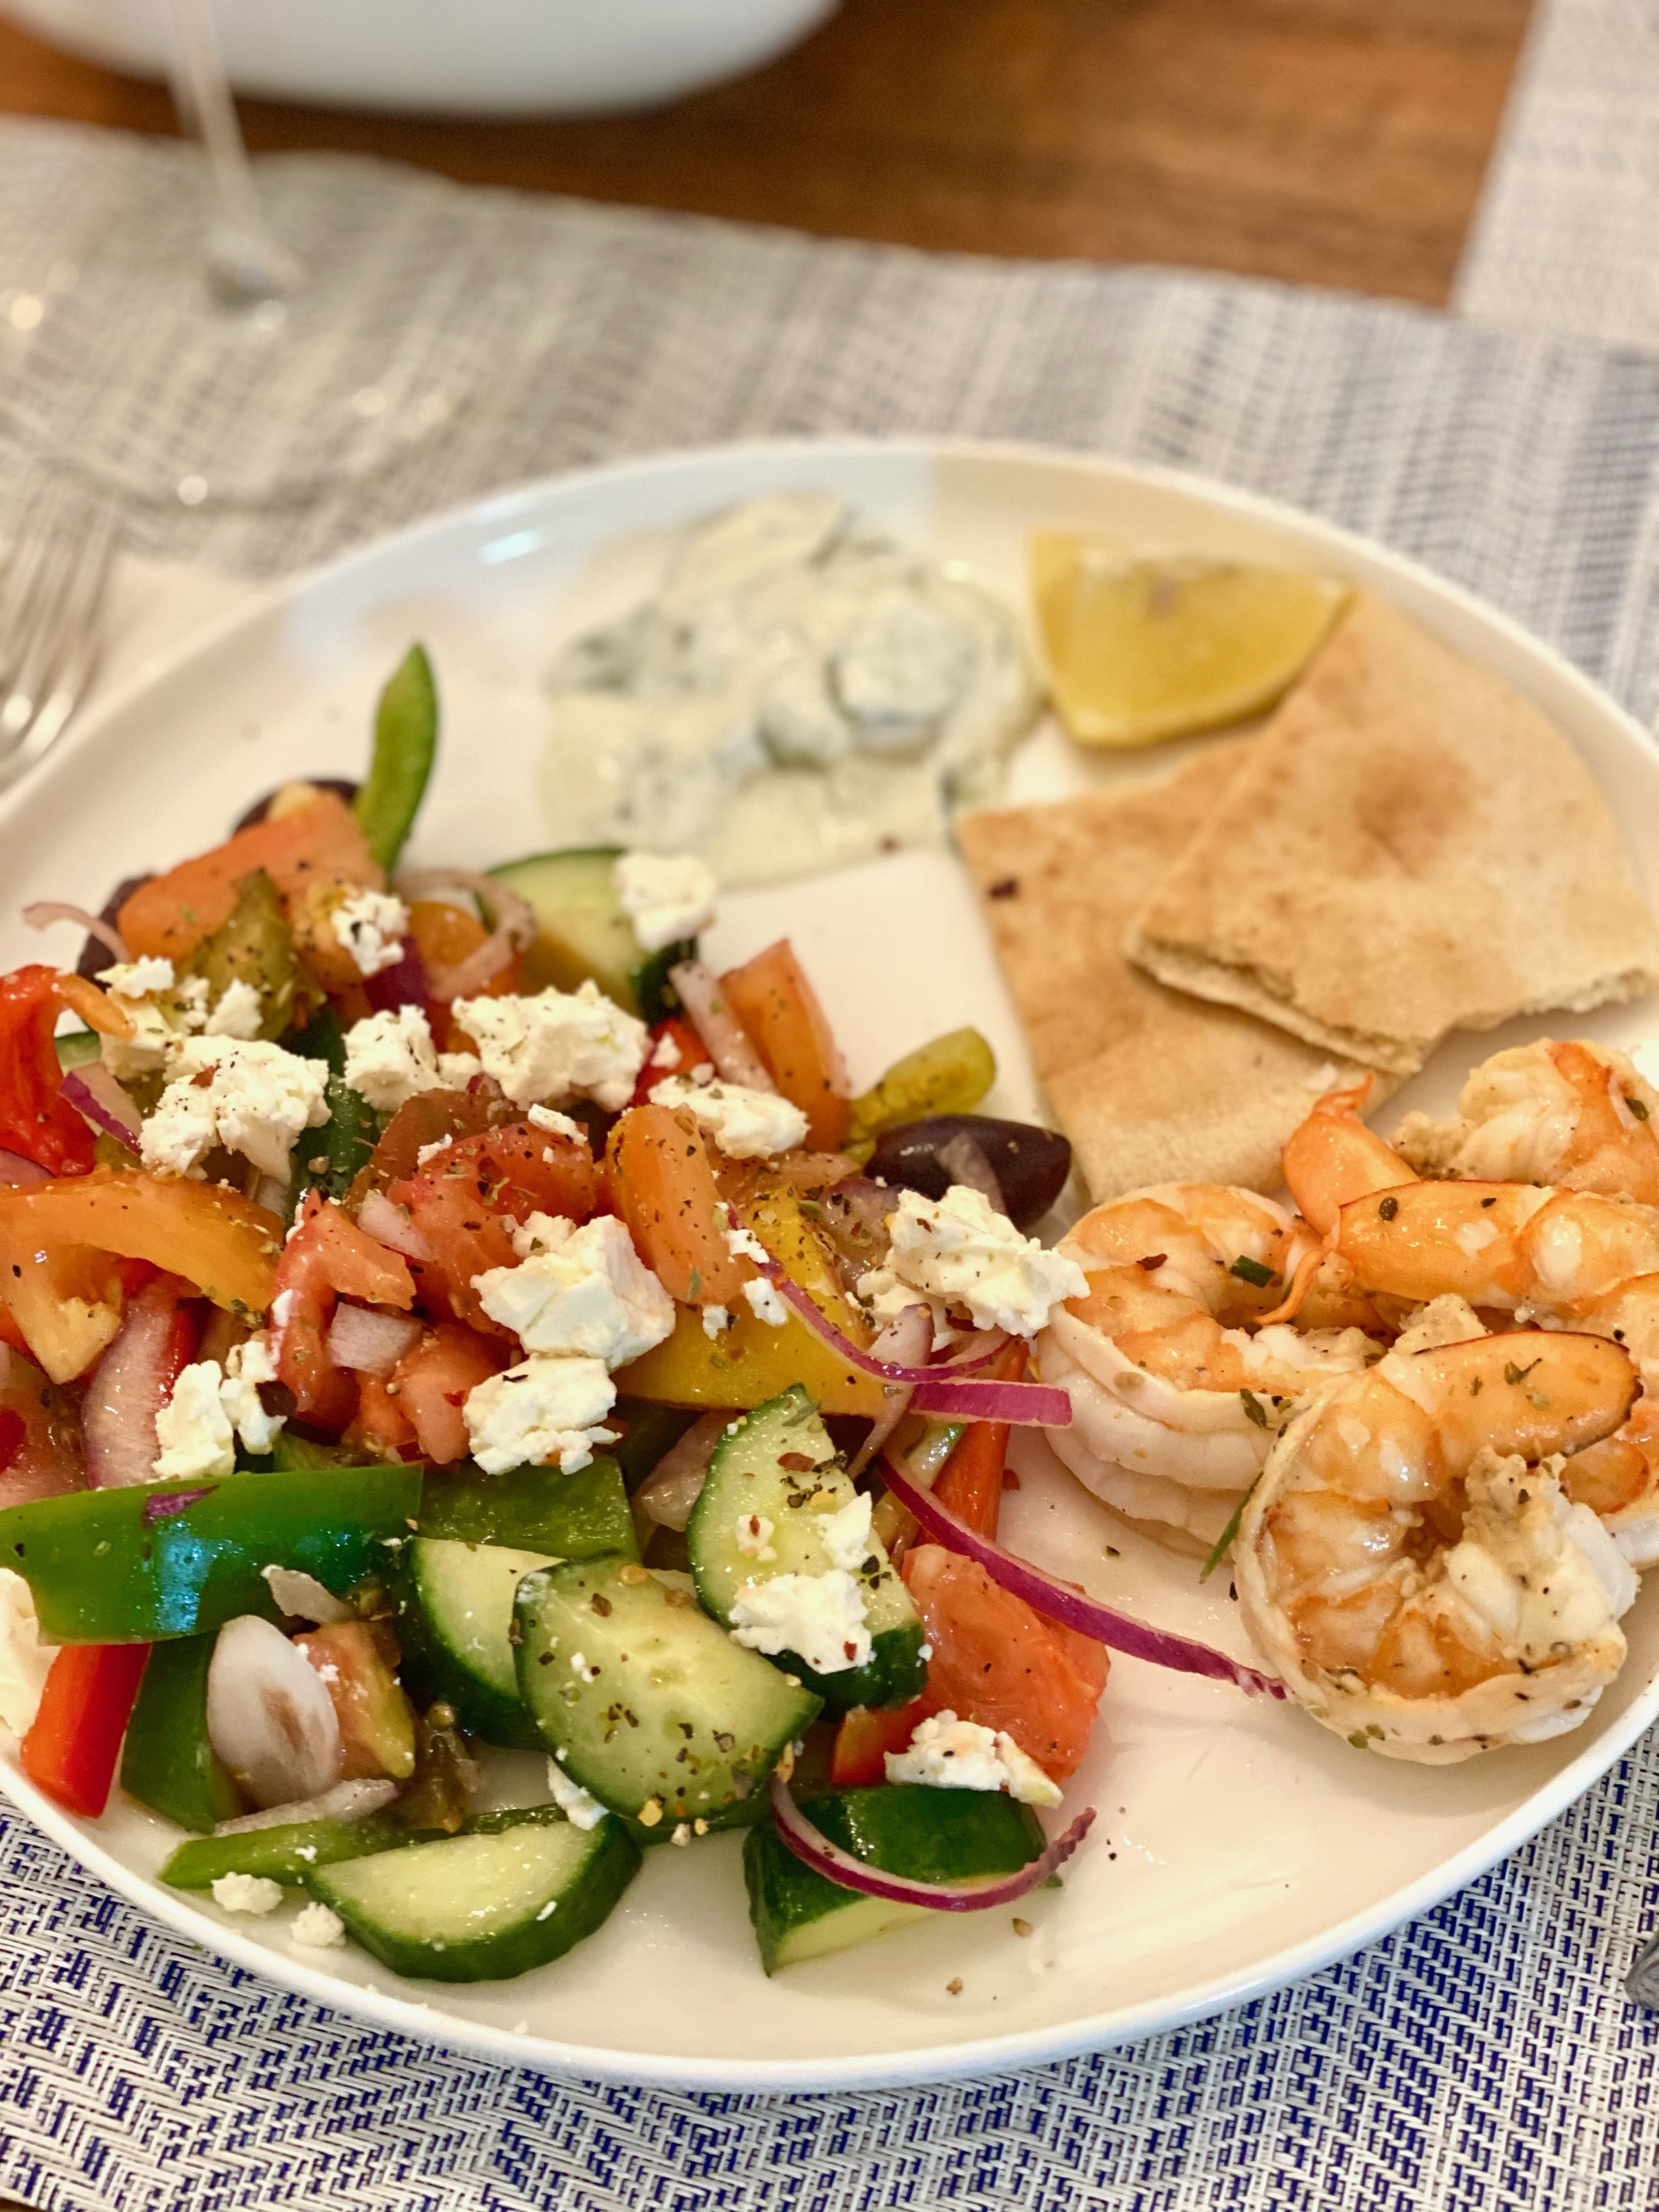 A traditional Greek salad with pita and grilled shrimp on the side.